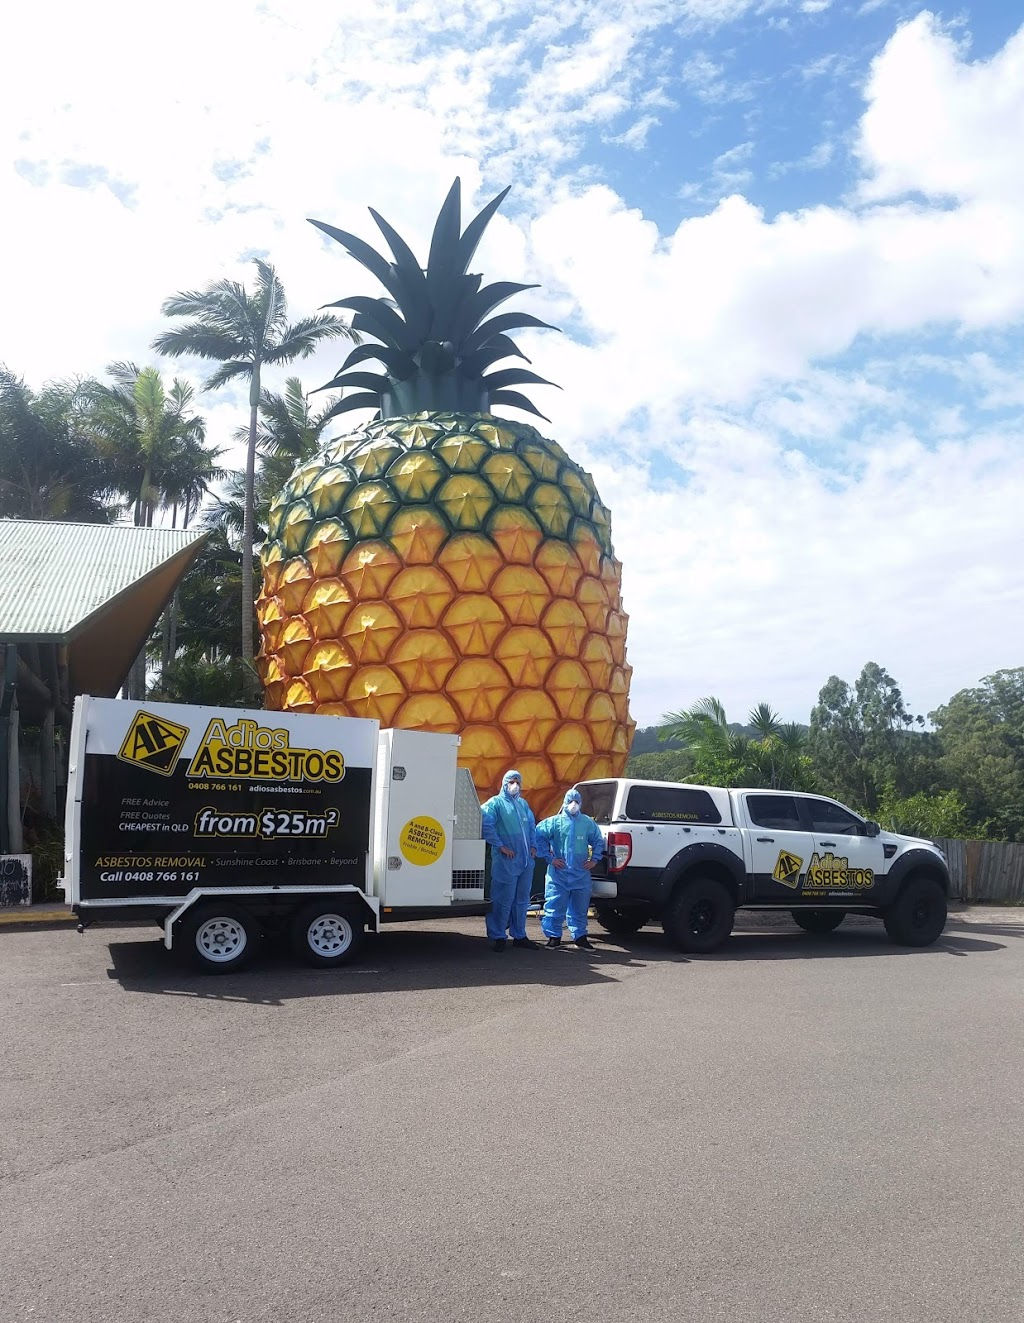 Adios Asbestos Removal Sunshine Coast   roofing contractor   36 Forestwood Dr, Buderim QLD 4556, Australia   0408766161 OR +61 408 766 161